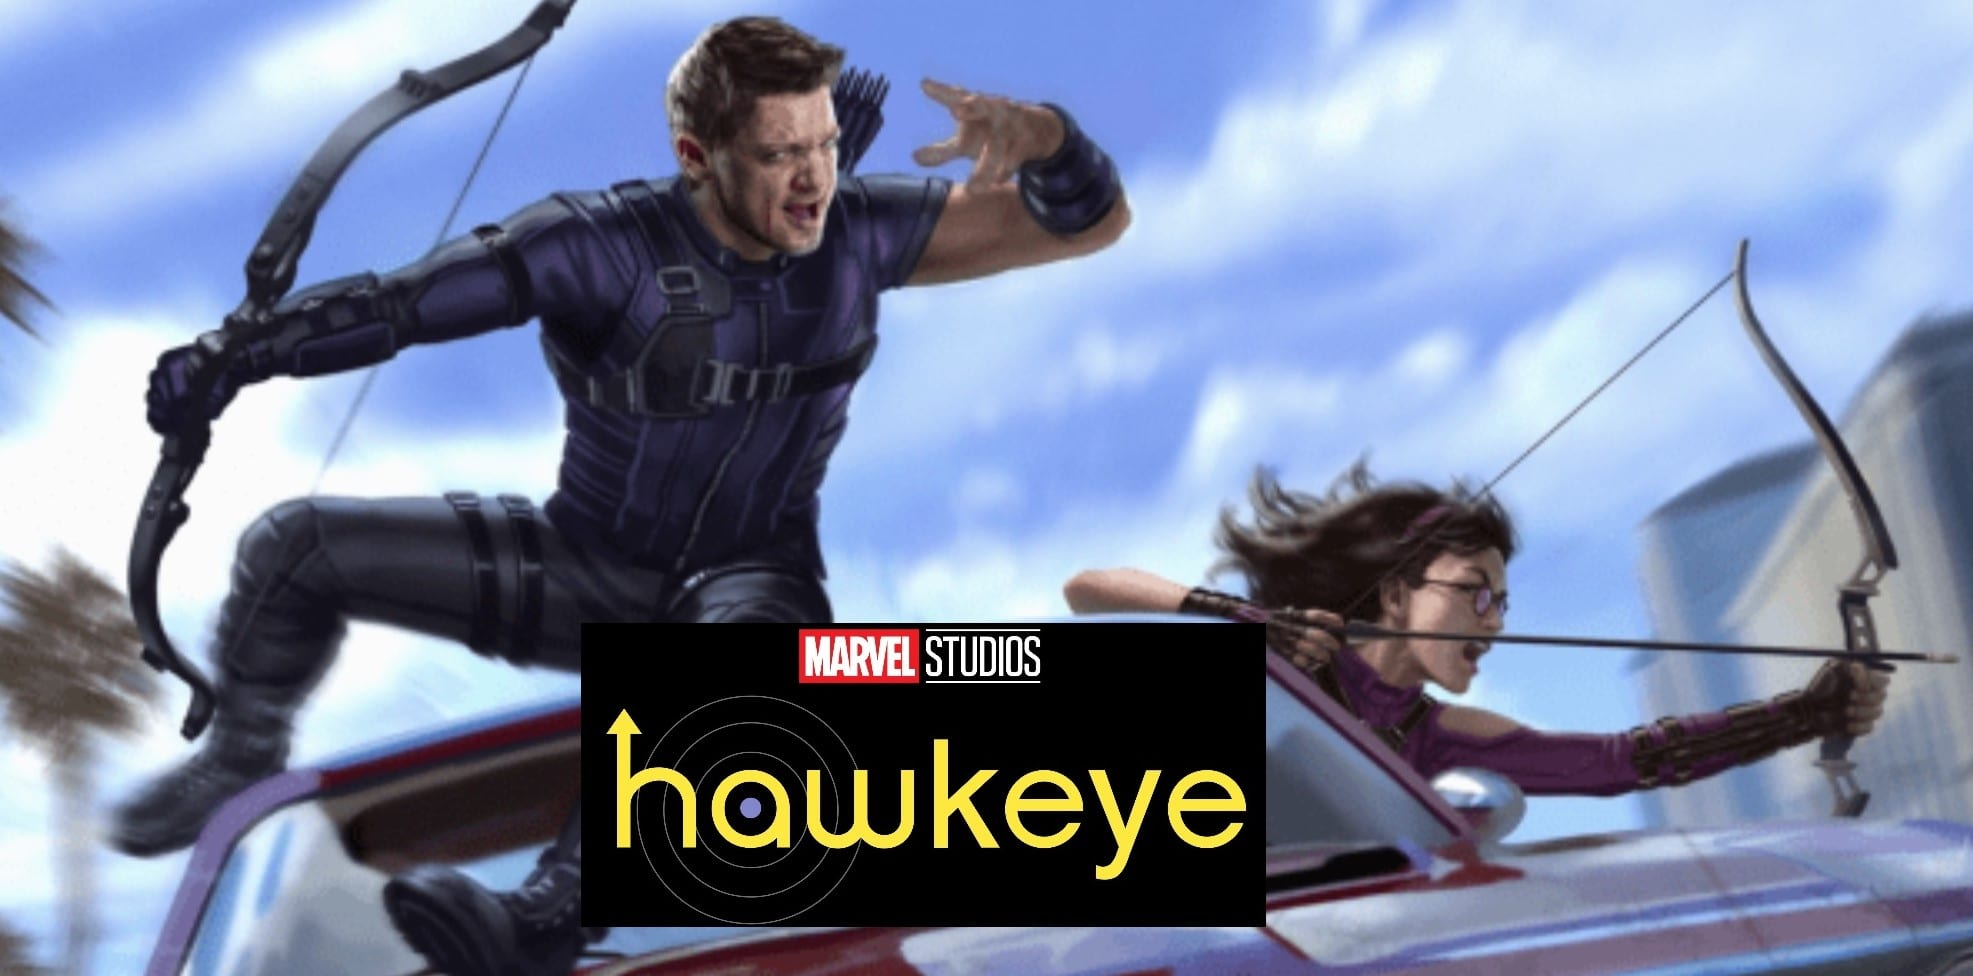 Hawkeye series adds multiple directors